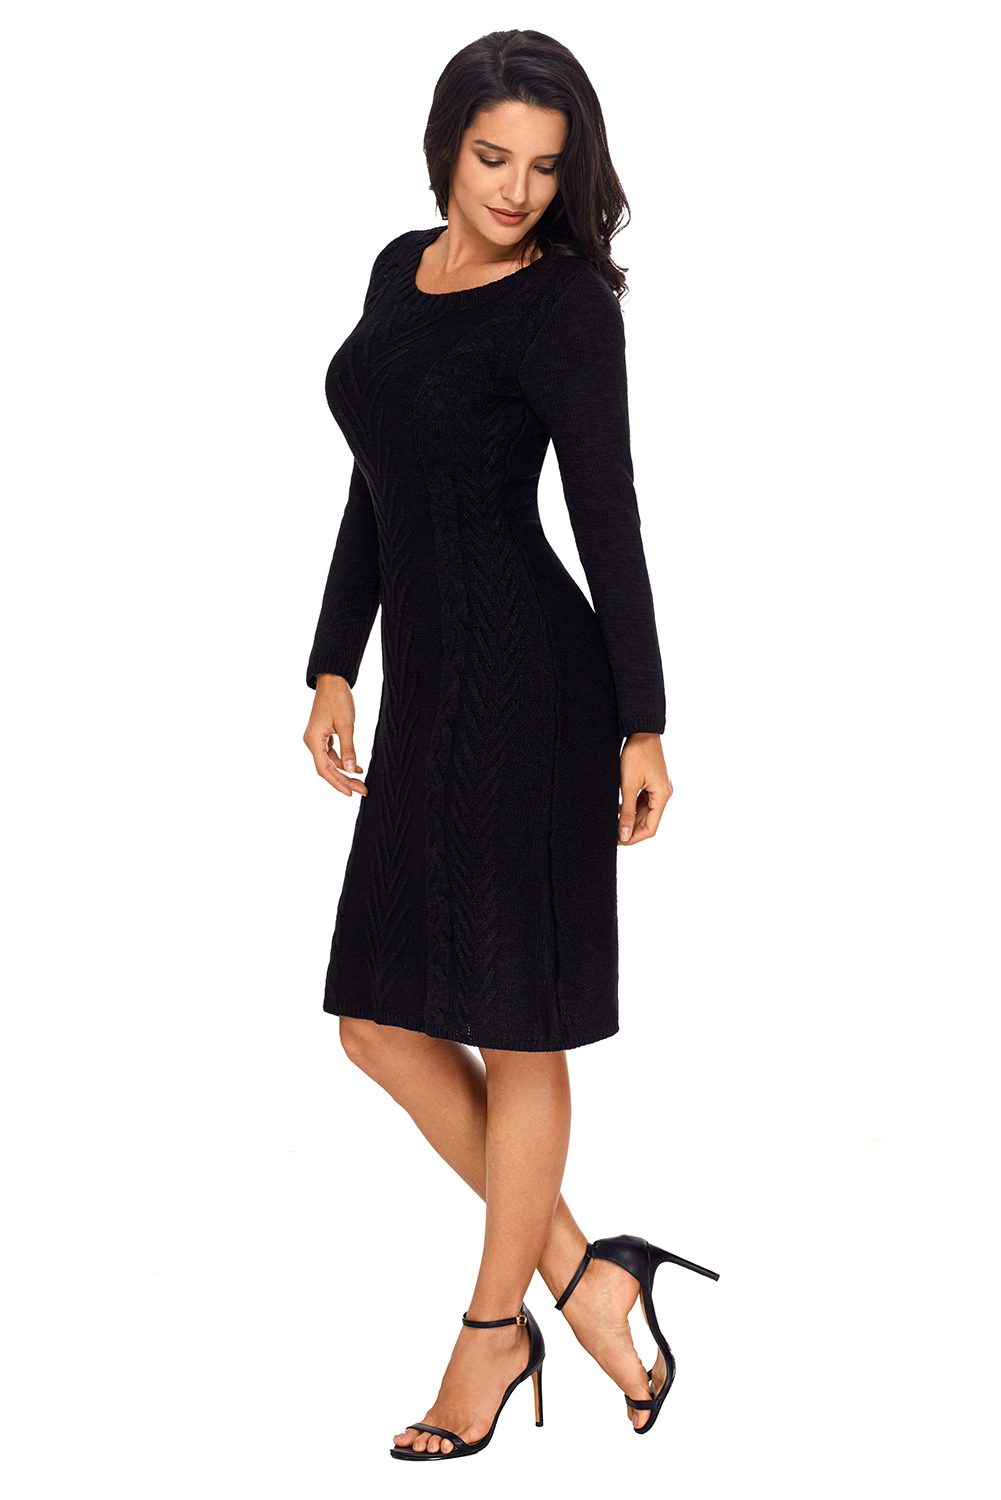 BY27772-2 Black Womens Hand Knitted Sweater Dress